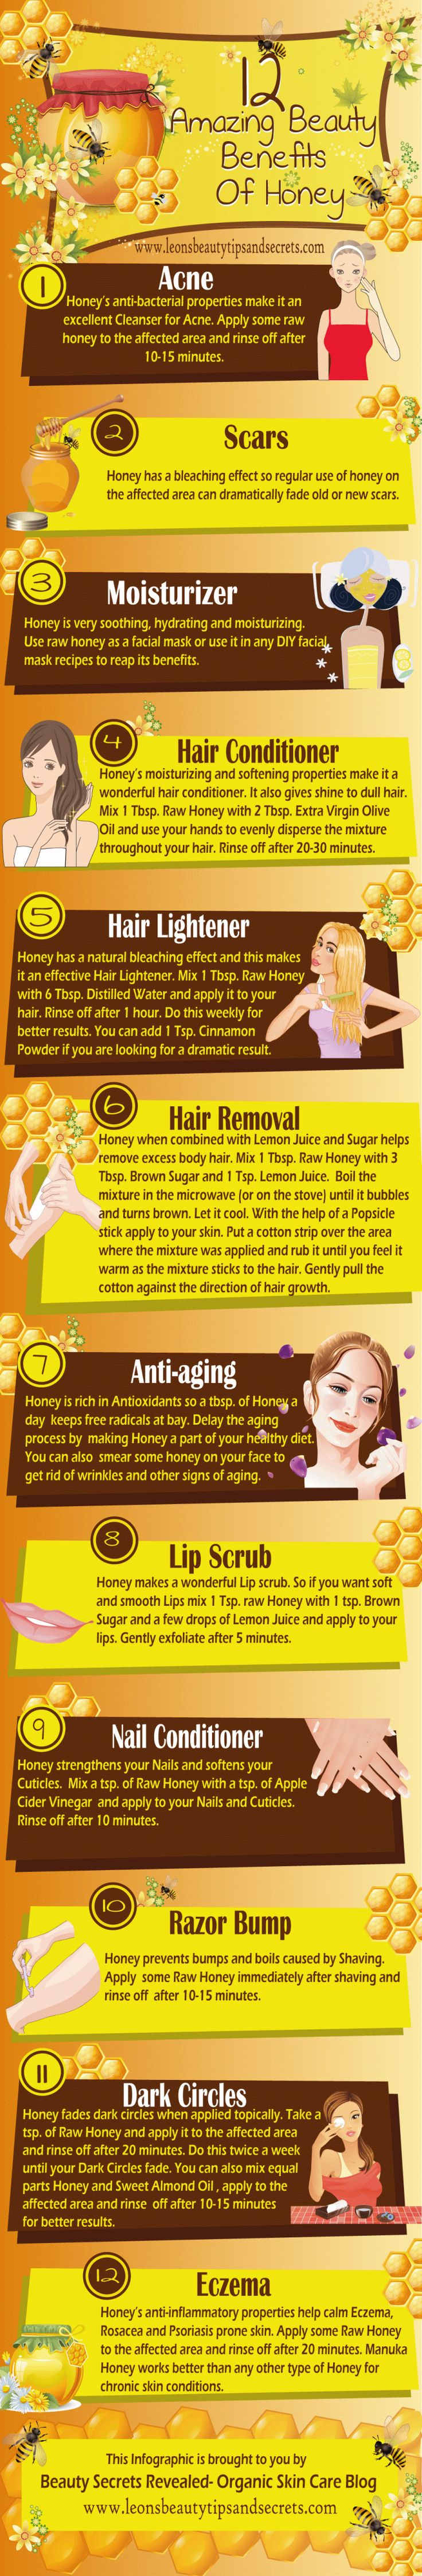 12 Amazing Beauty Benefits Of #Honey #Infographic